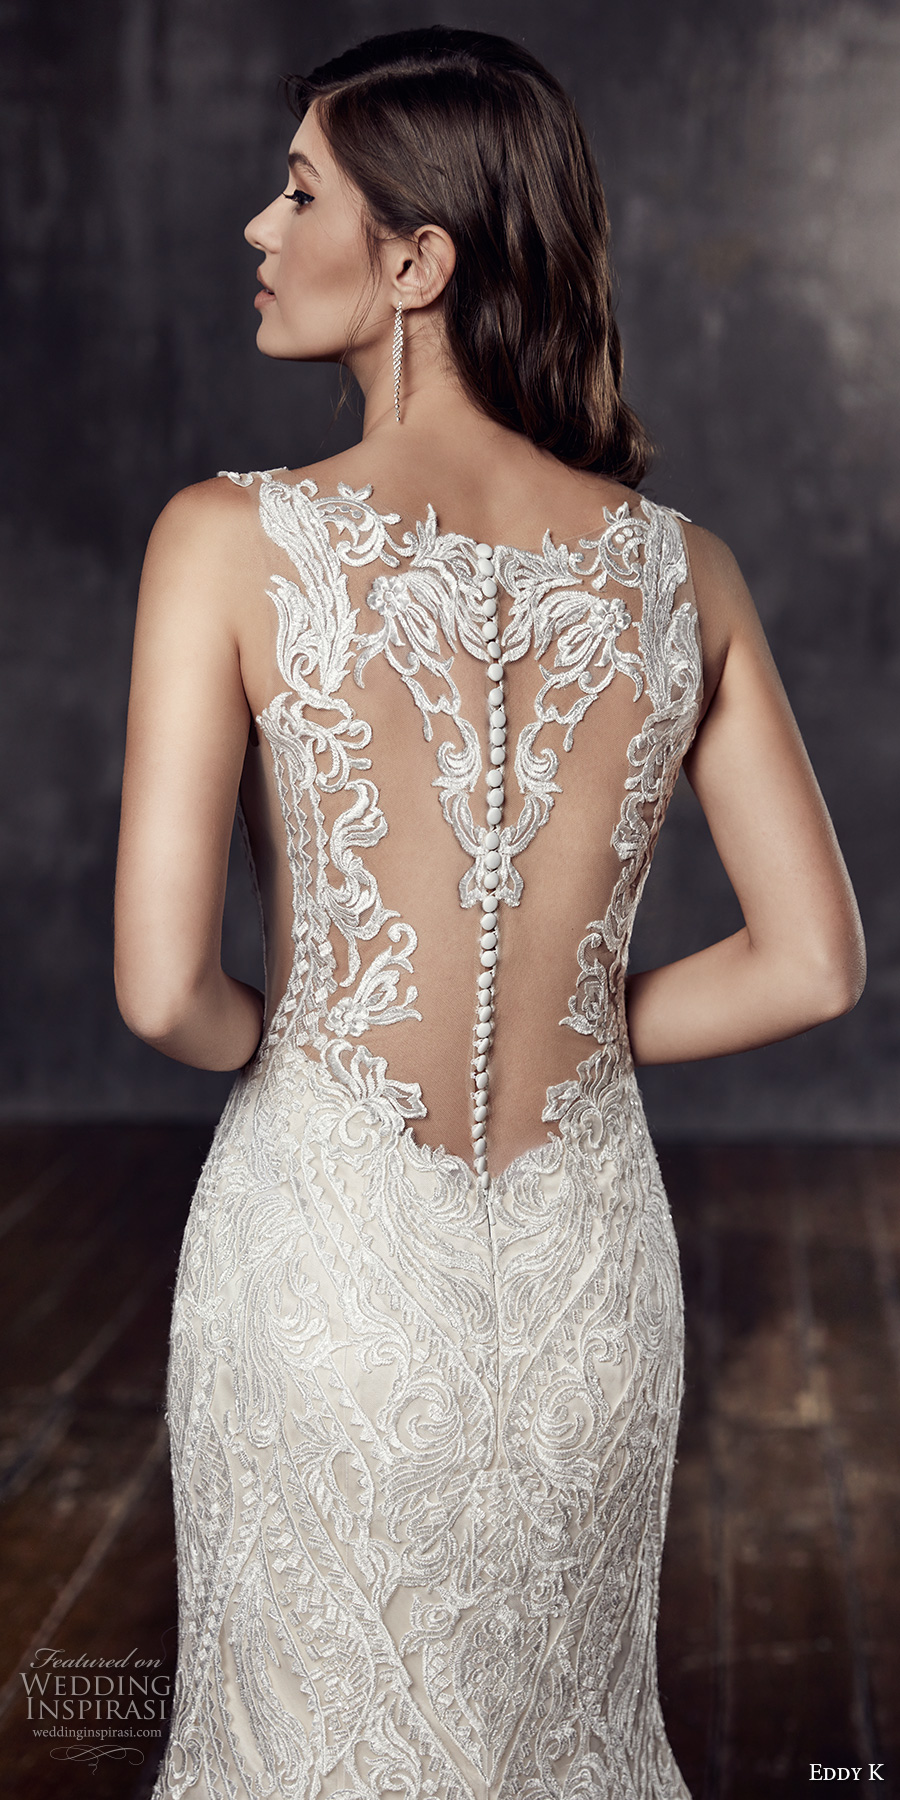 eddy k 2018 bridal sleeveless embroidered strap v neck full embellishment elegant lace fit and flare wedding dress sheer lace back chapel train (ct198) zbv